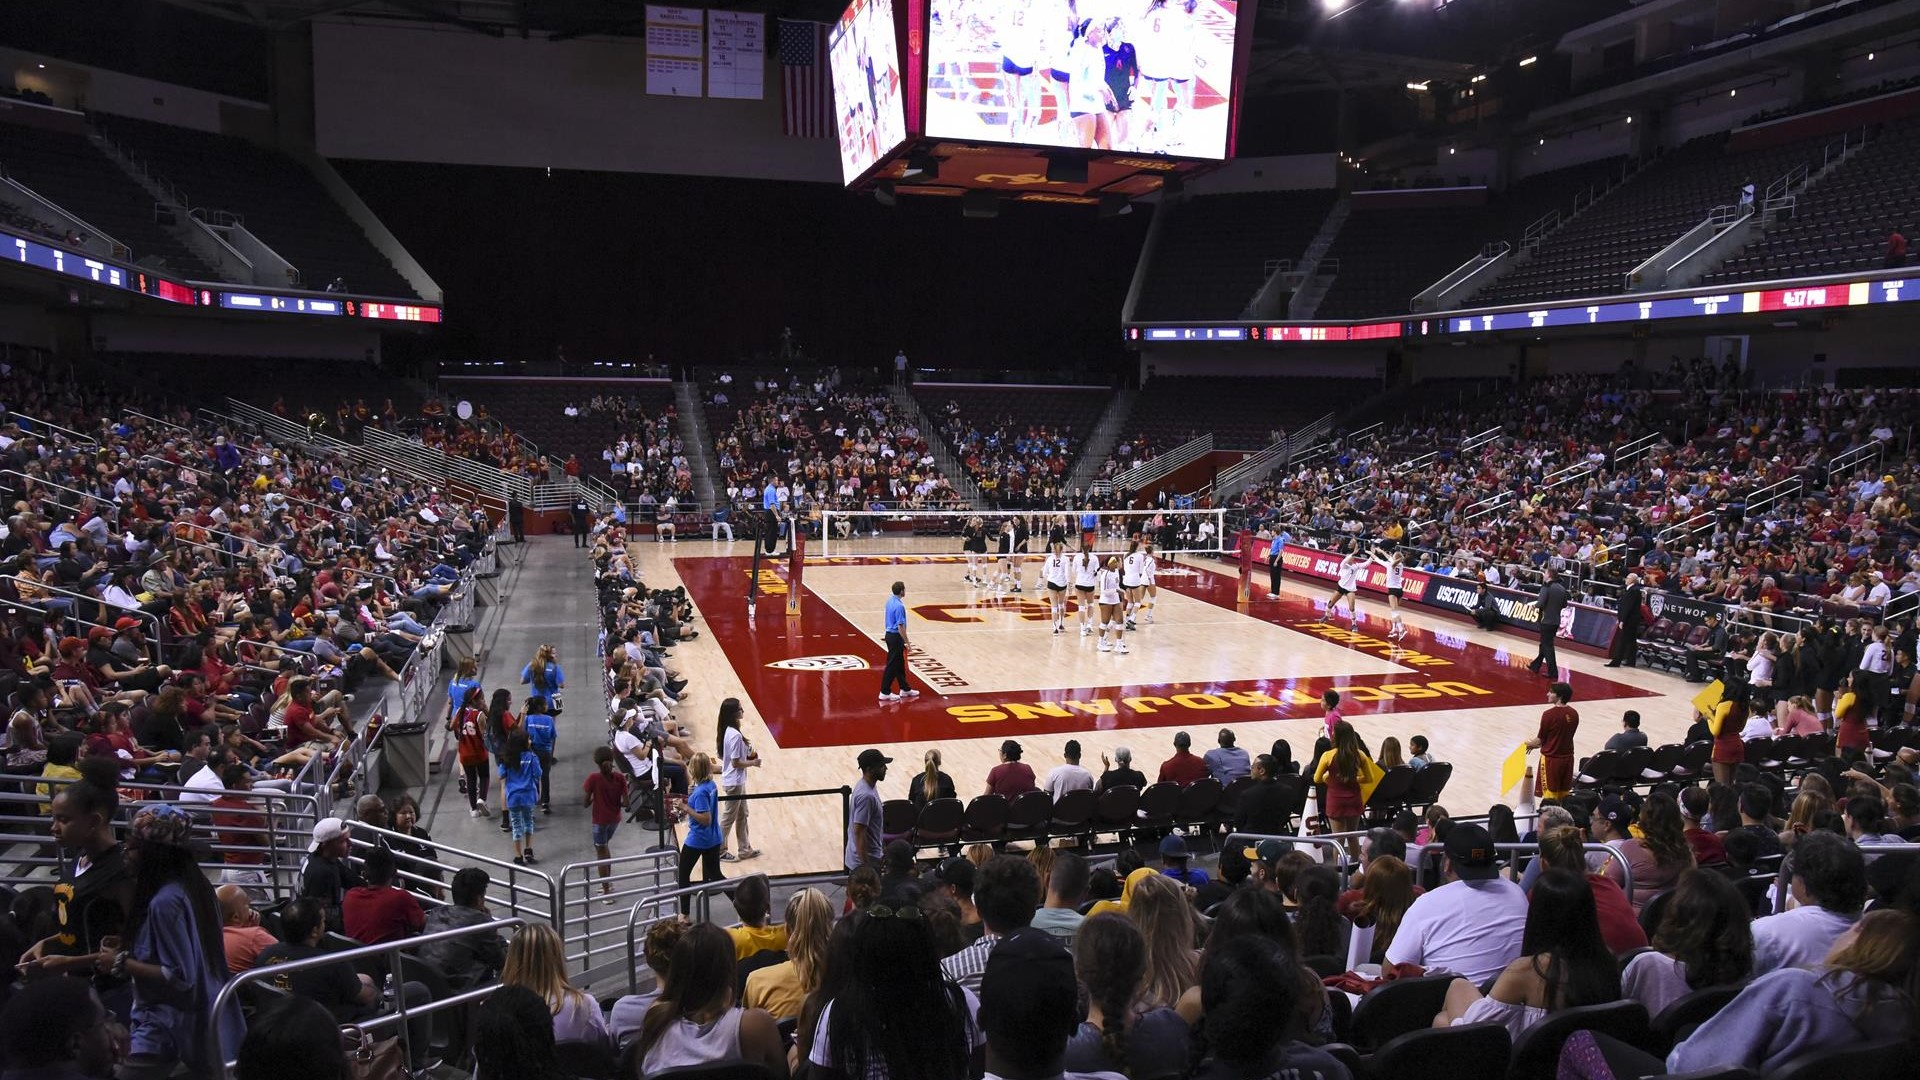 Galen Center View Full Image